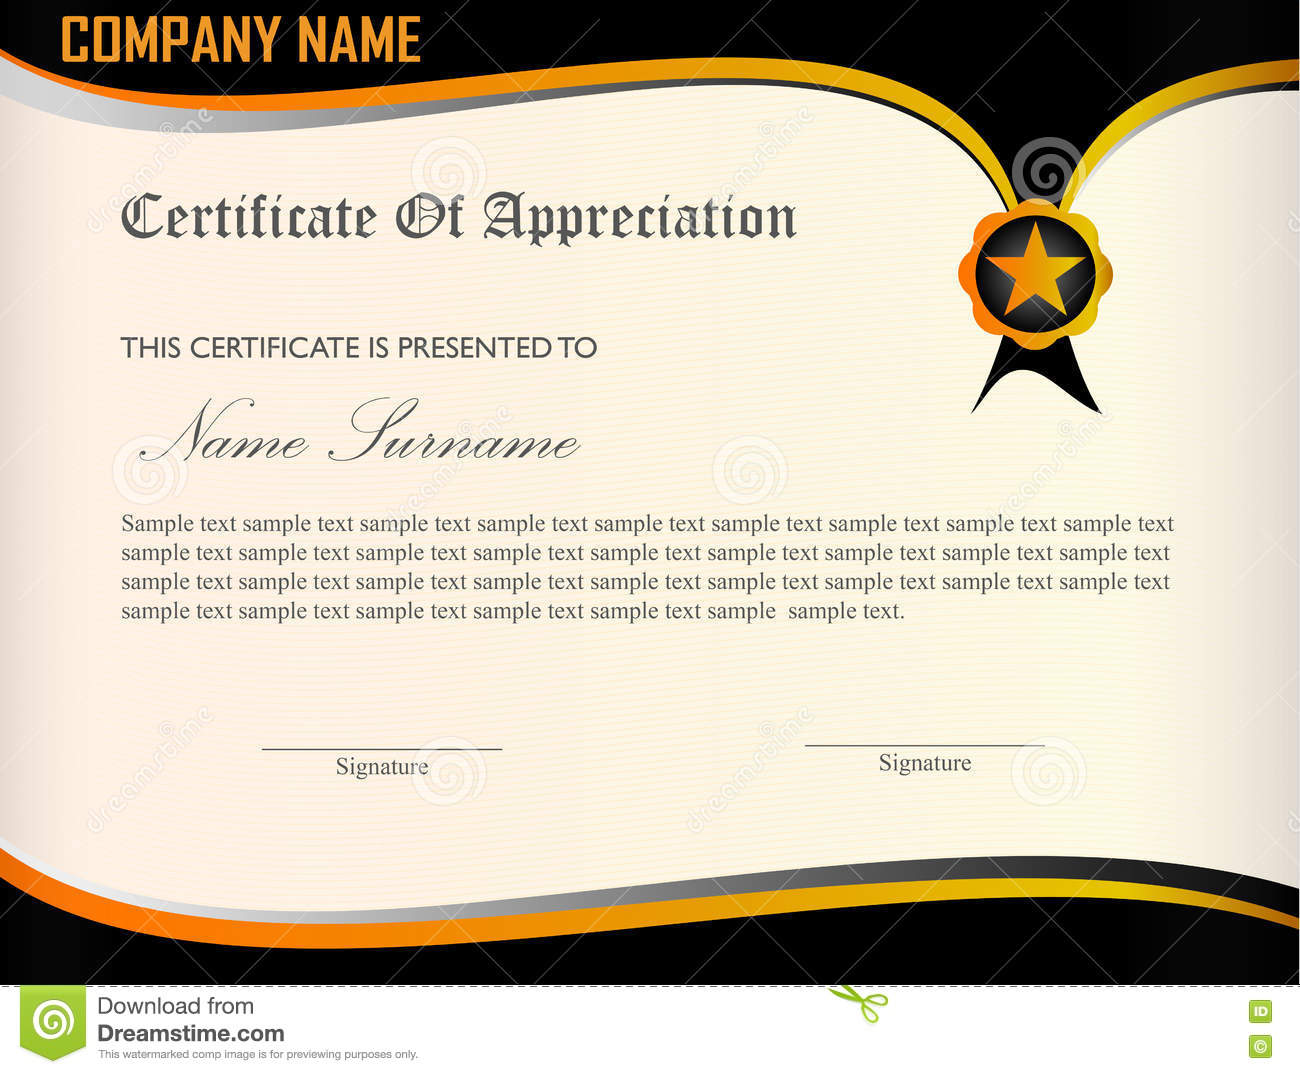 free certificates of appreciation templates